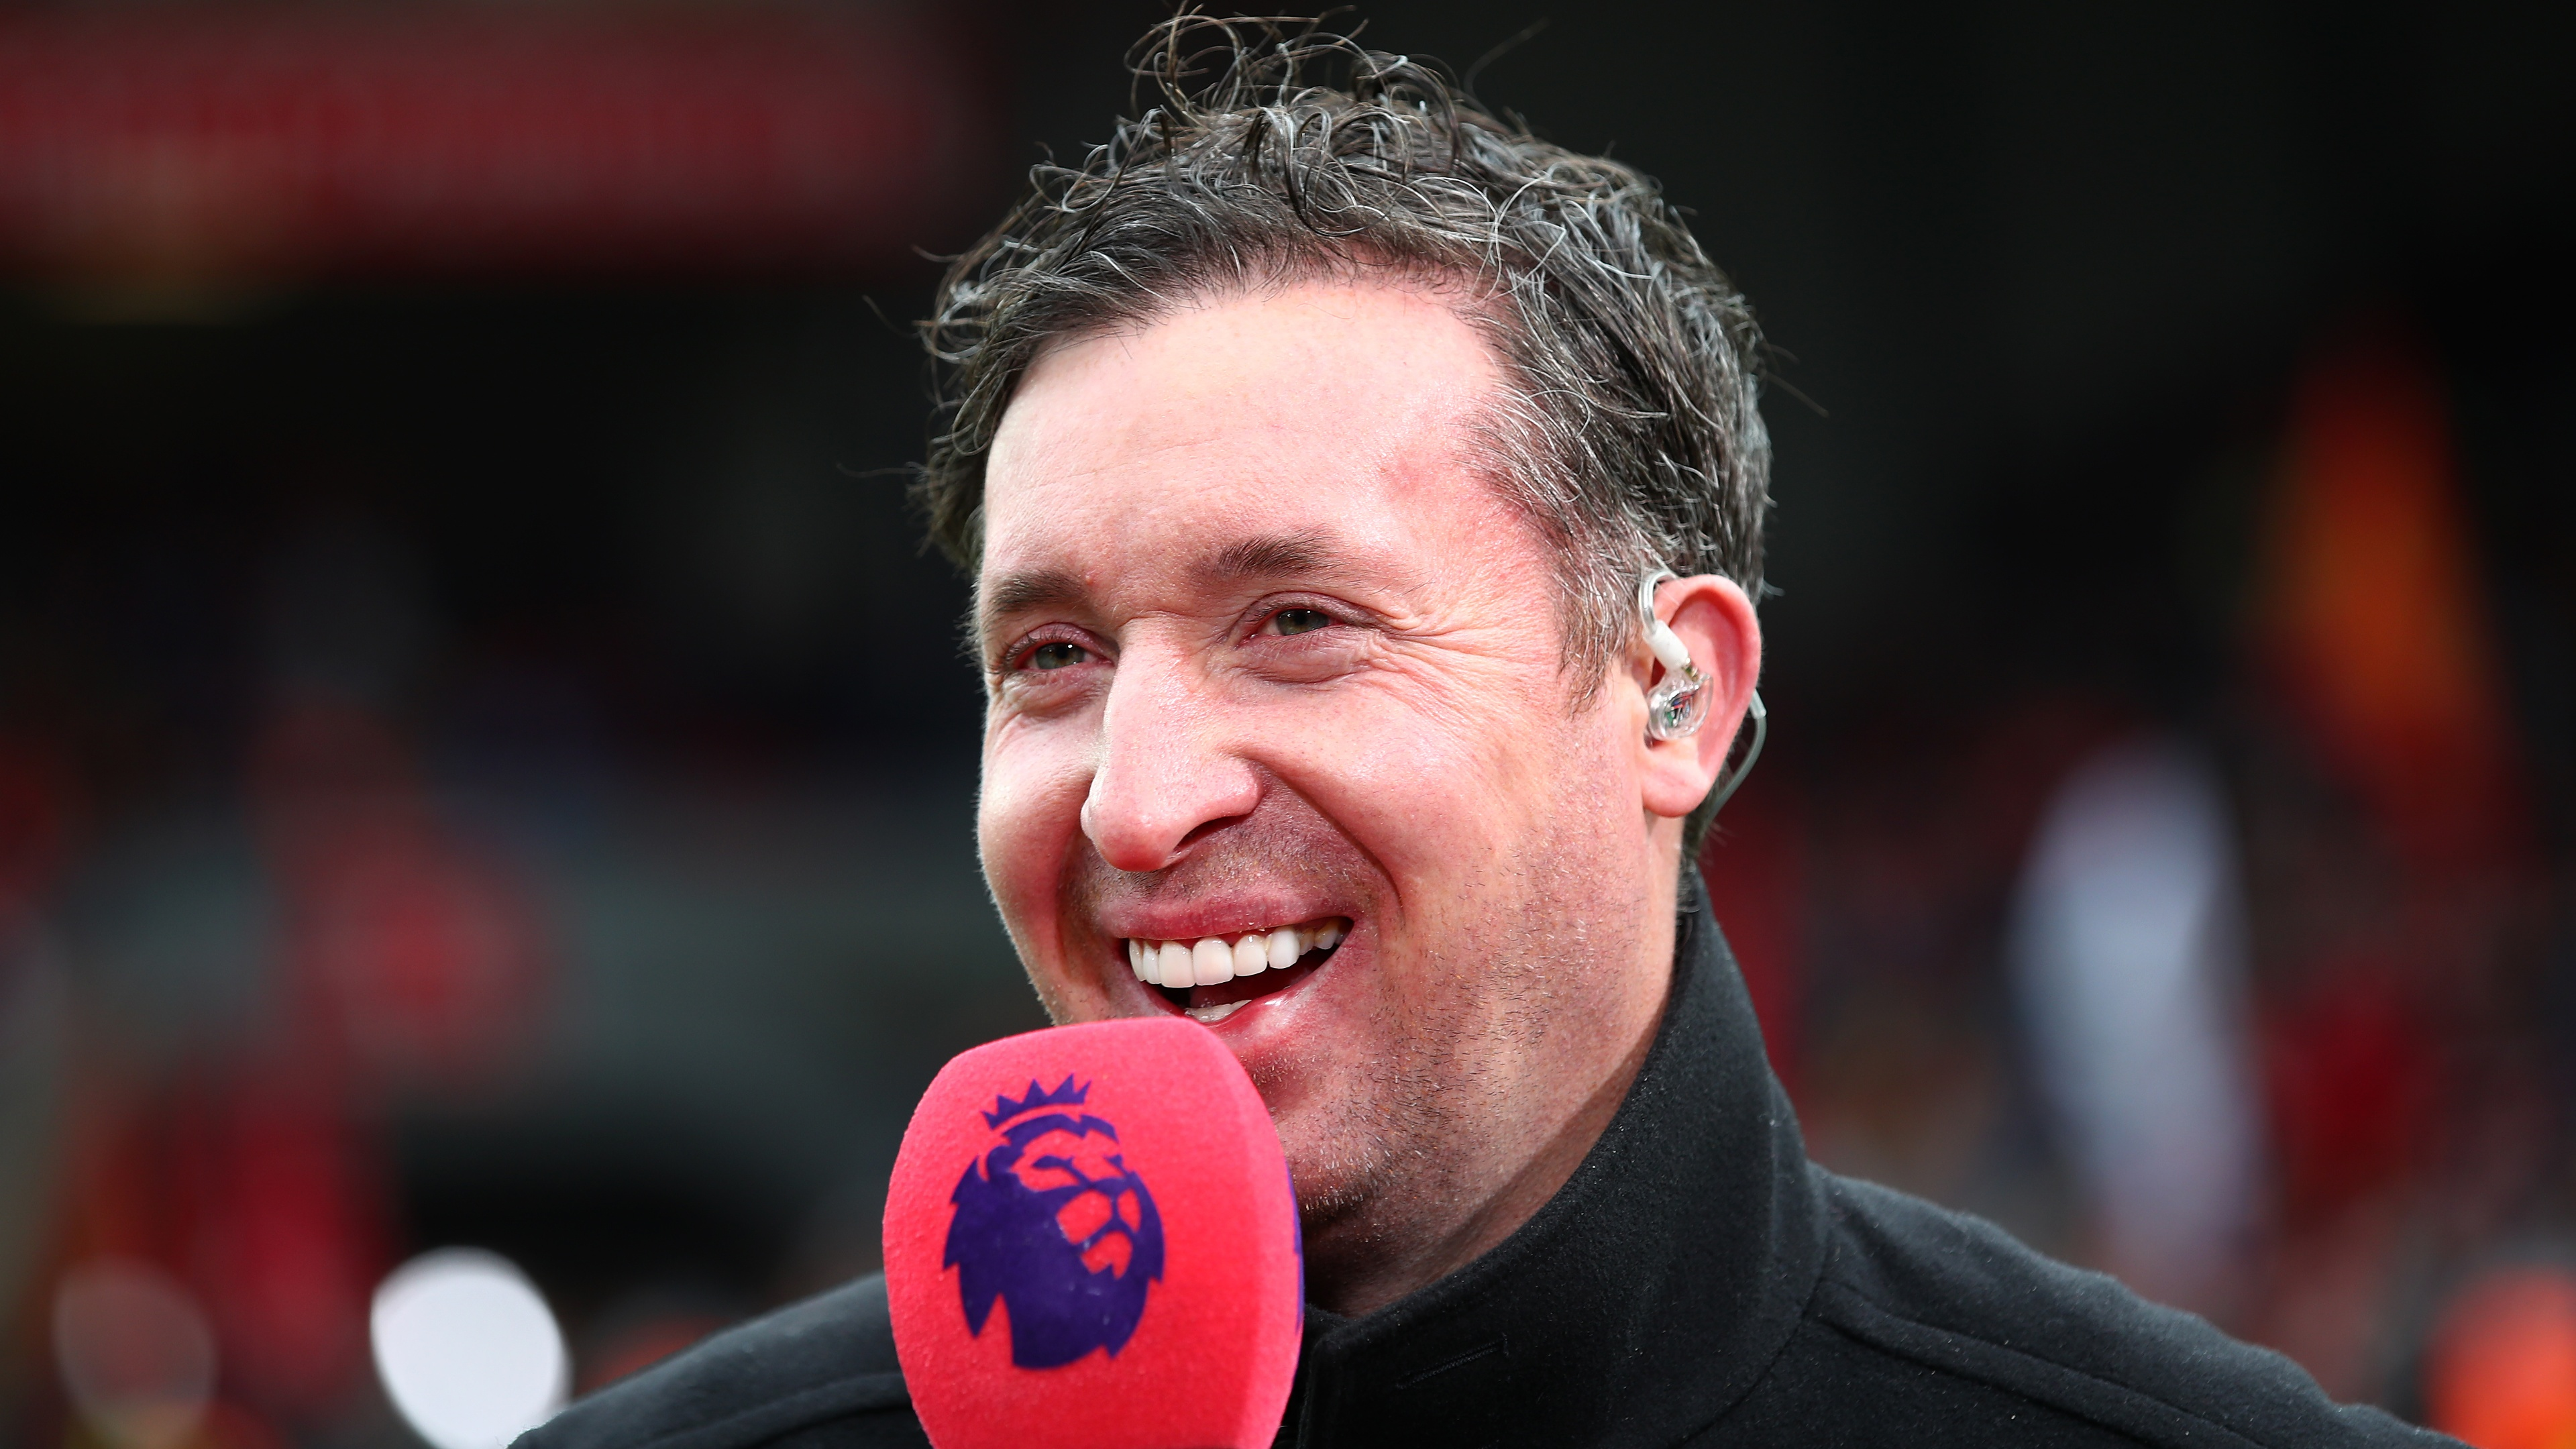 Robbie Fowler announced as Brisbane Roar coach